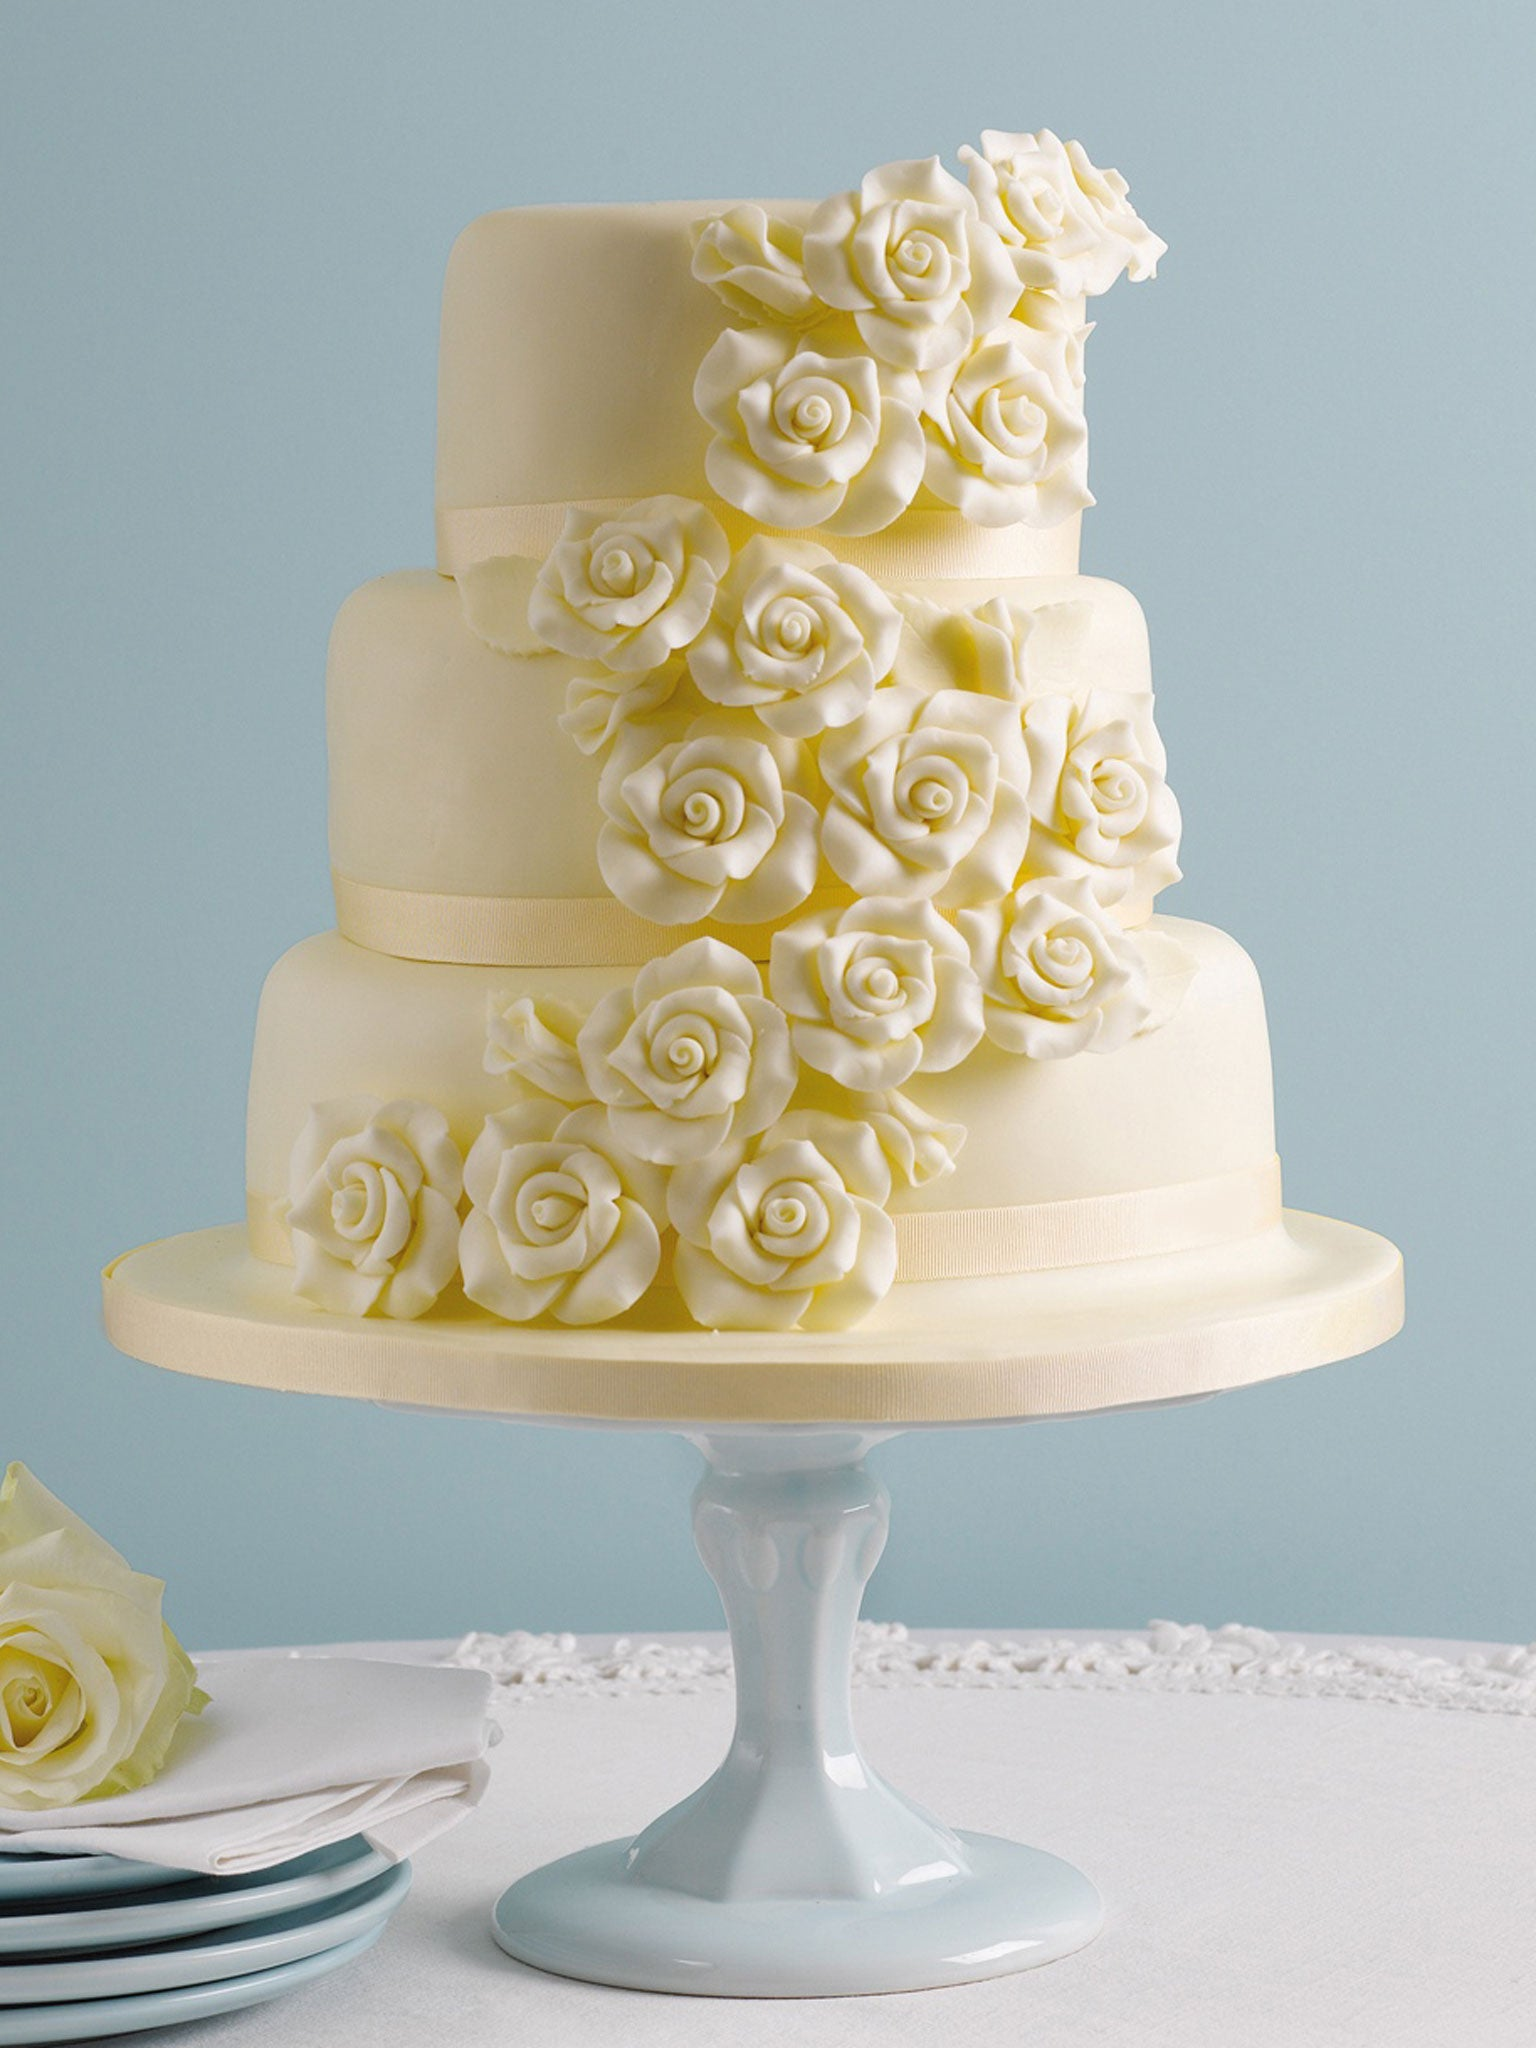 The 10 Best wedding cakes | The Independent